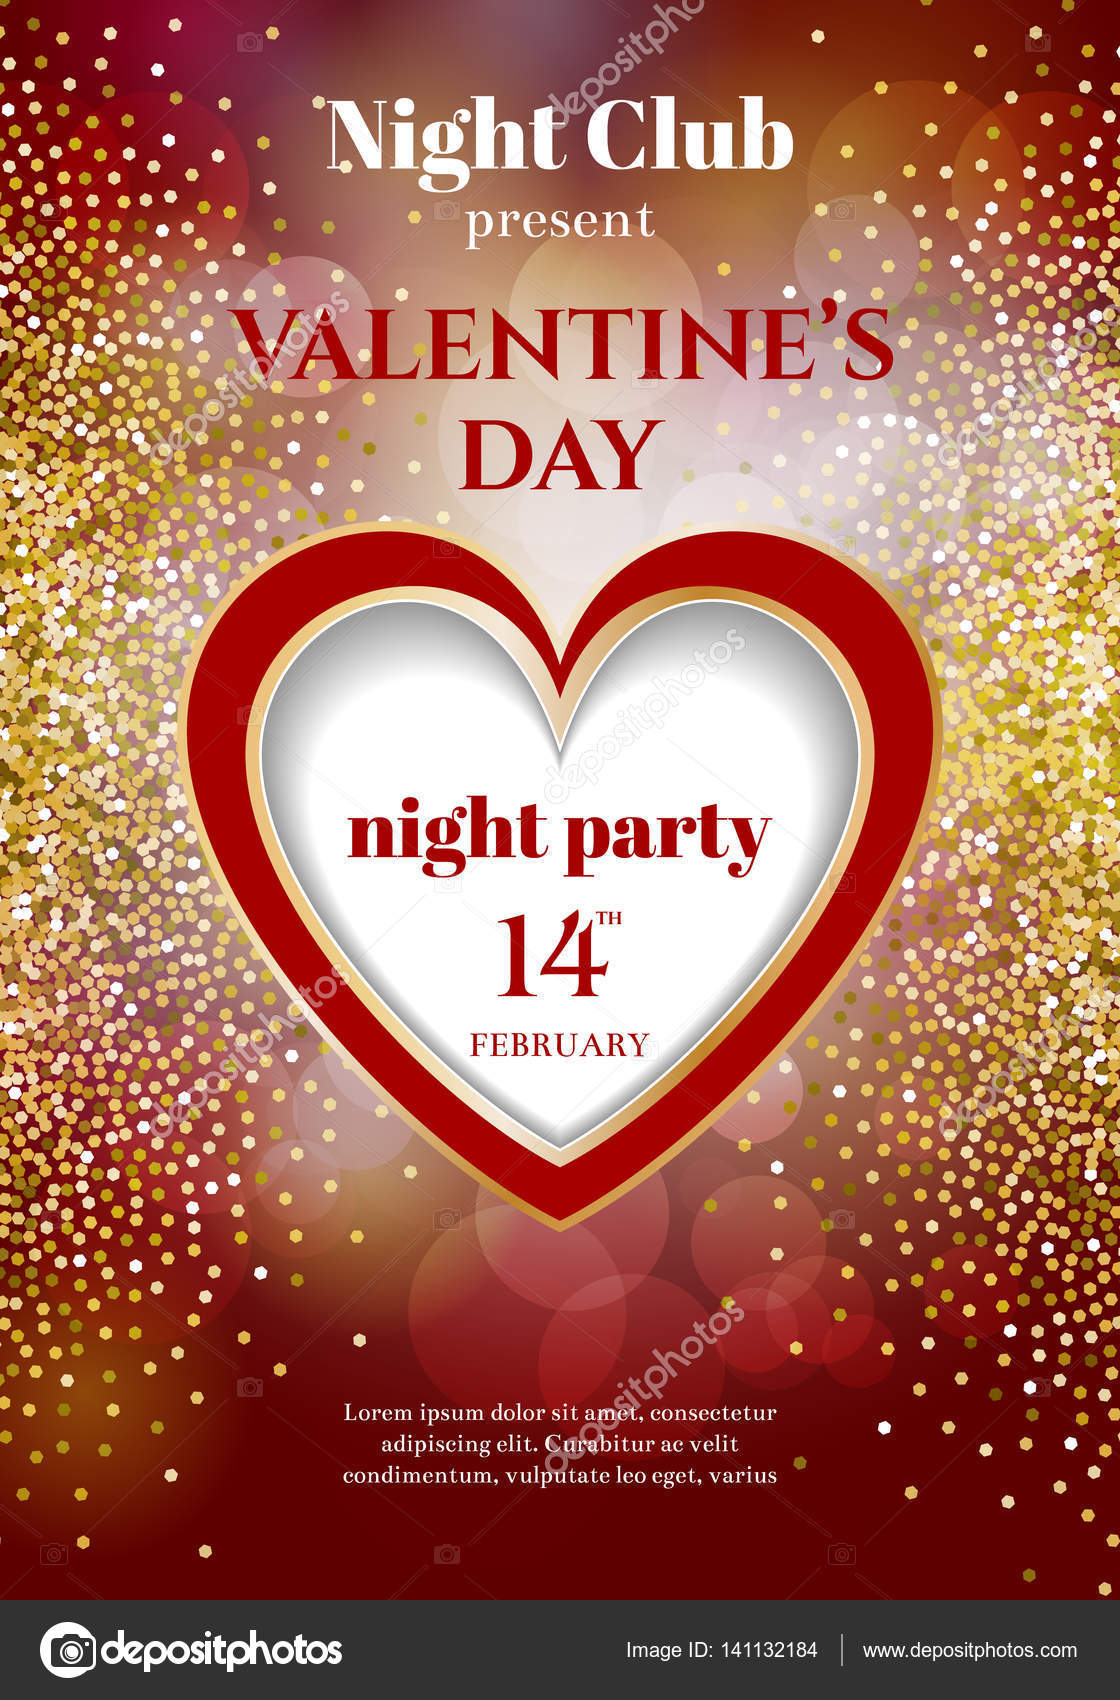 valentines day party flyer invitation  u2014 stock vector  u00a9 d